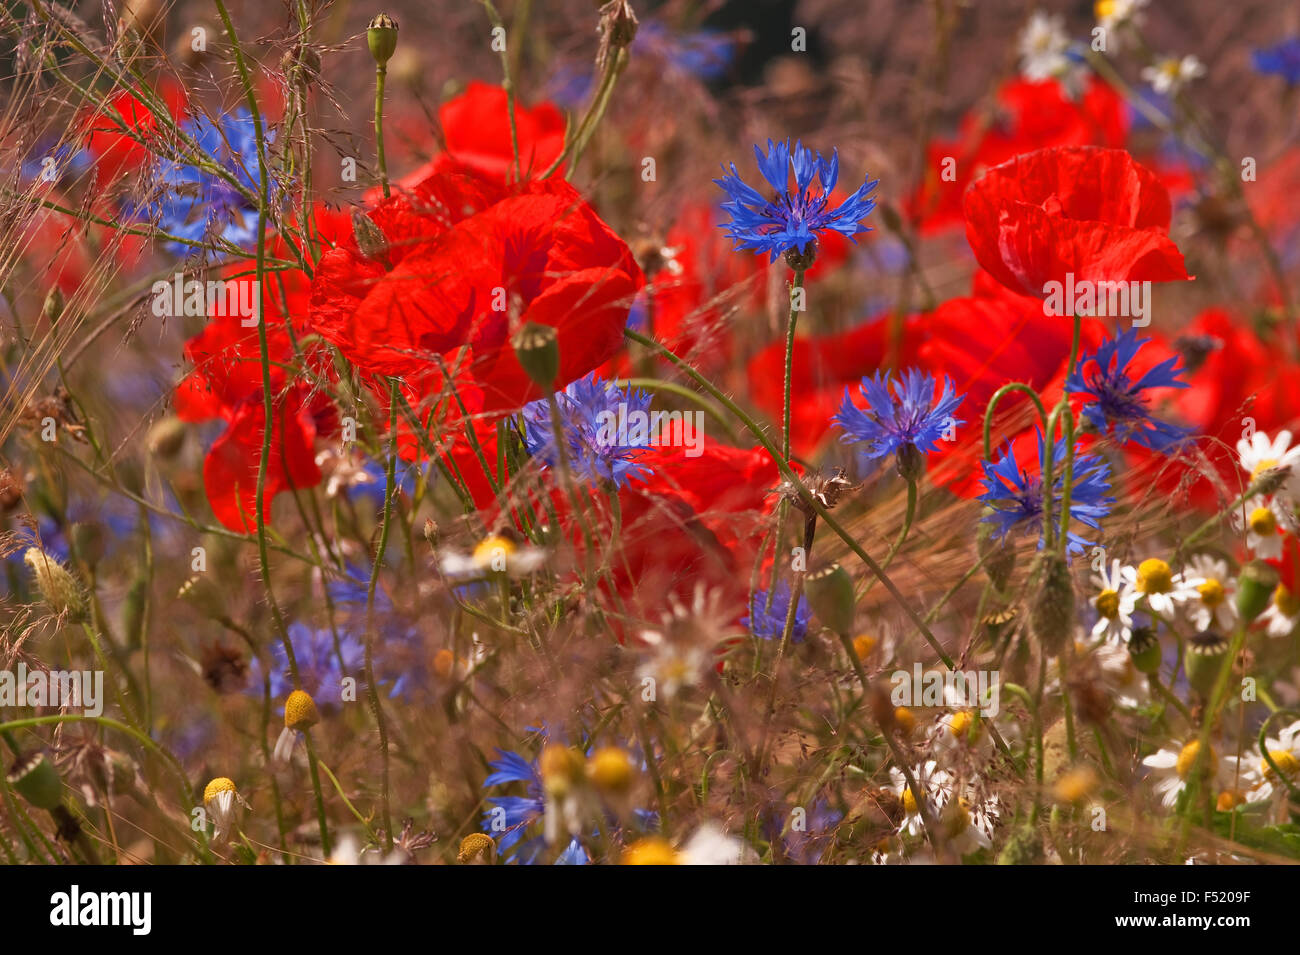 Sommerblumenwiese, Banque D'Images